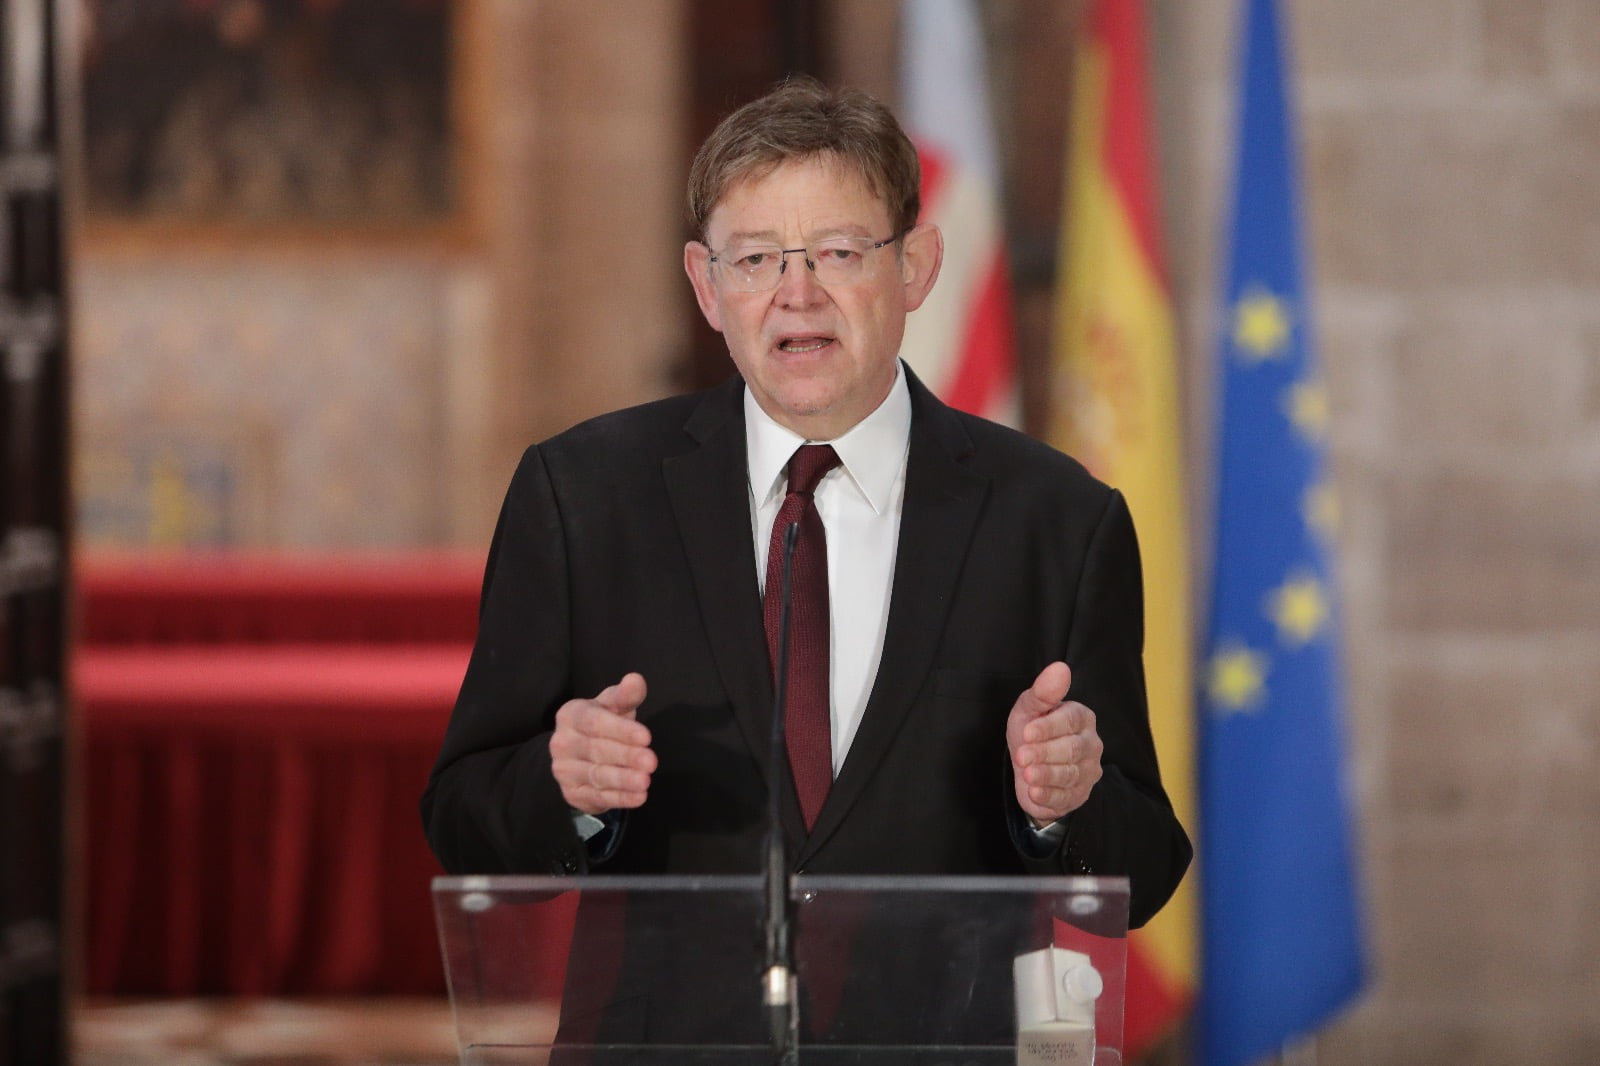 Puig announces the new measures for Phase 3 in the Valencian Community